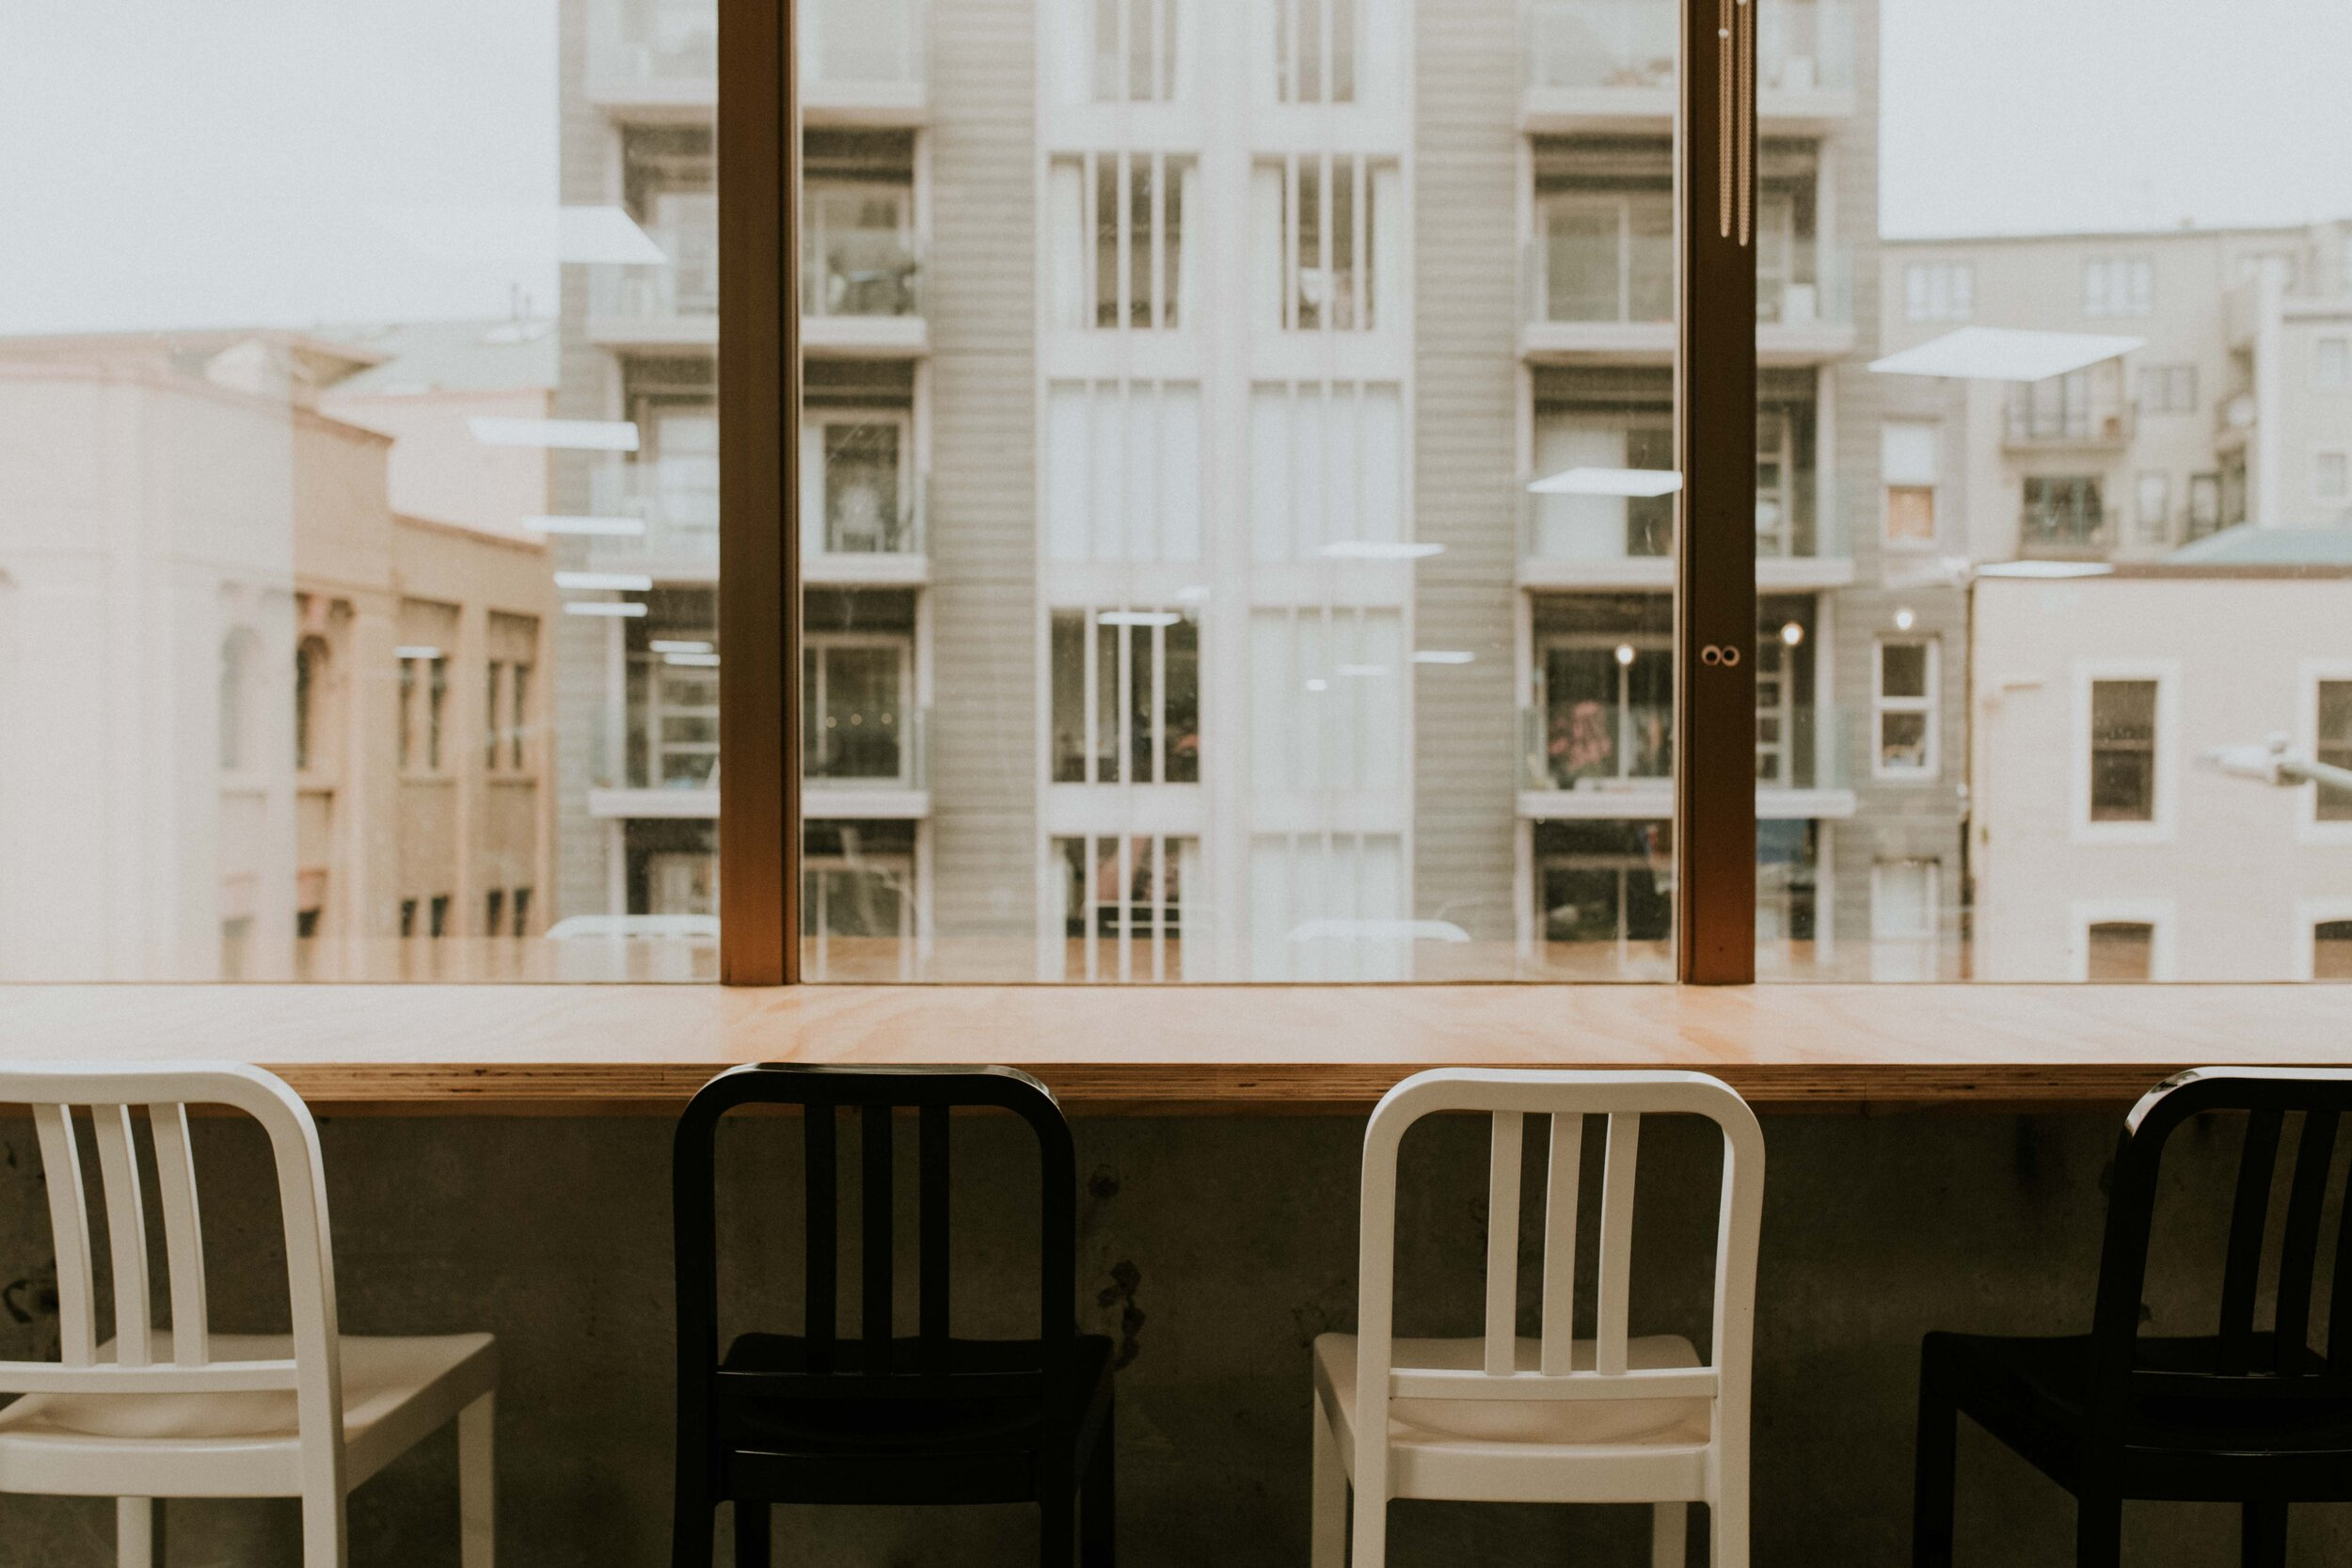 Hot Desk | $30/day - Bottomless filter coffee, wifi, a place to work. As simple as that.Price includes GST.